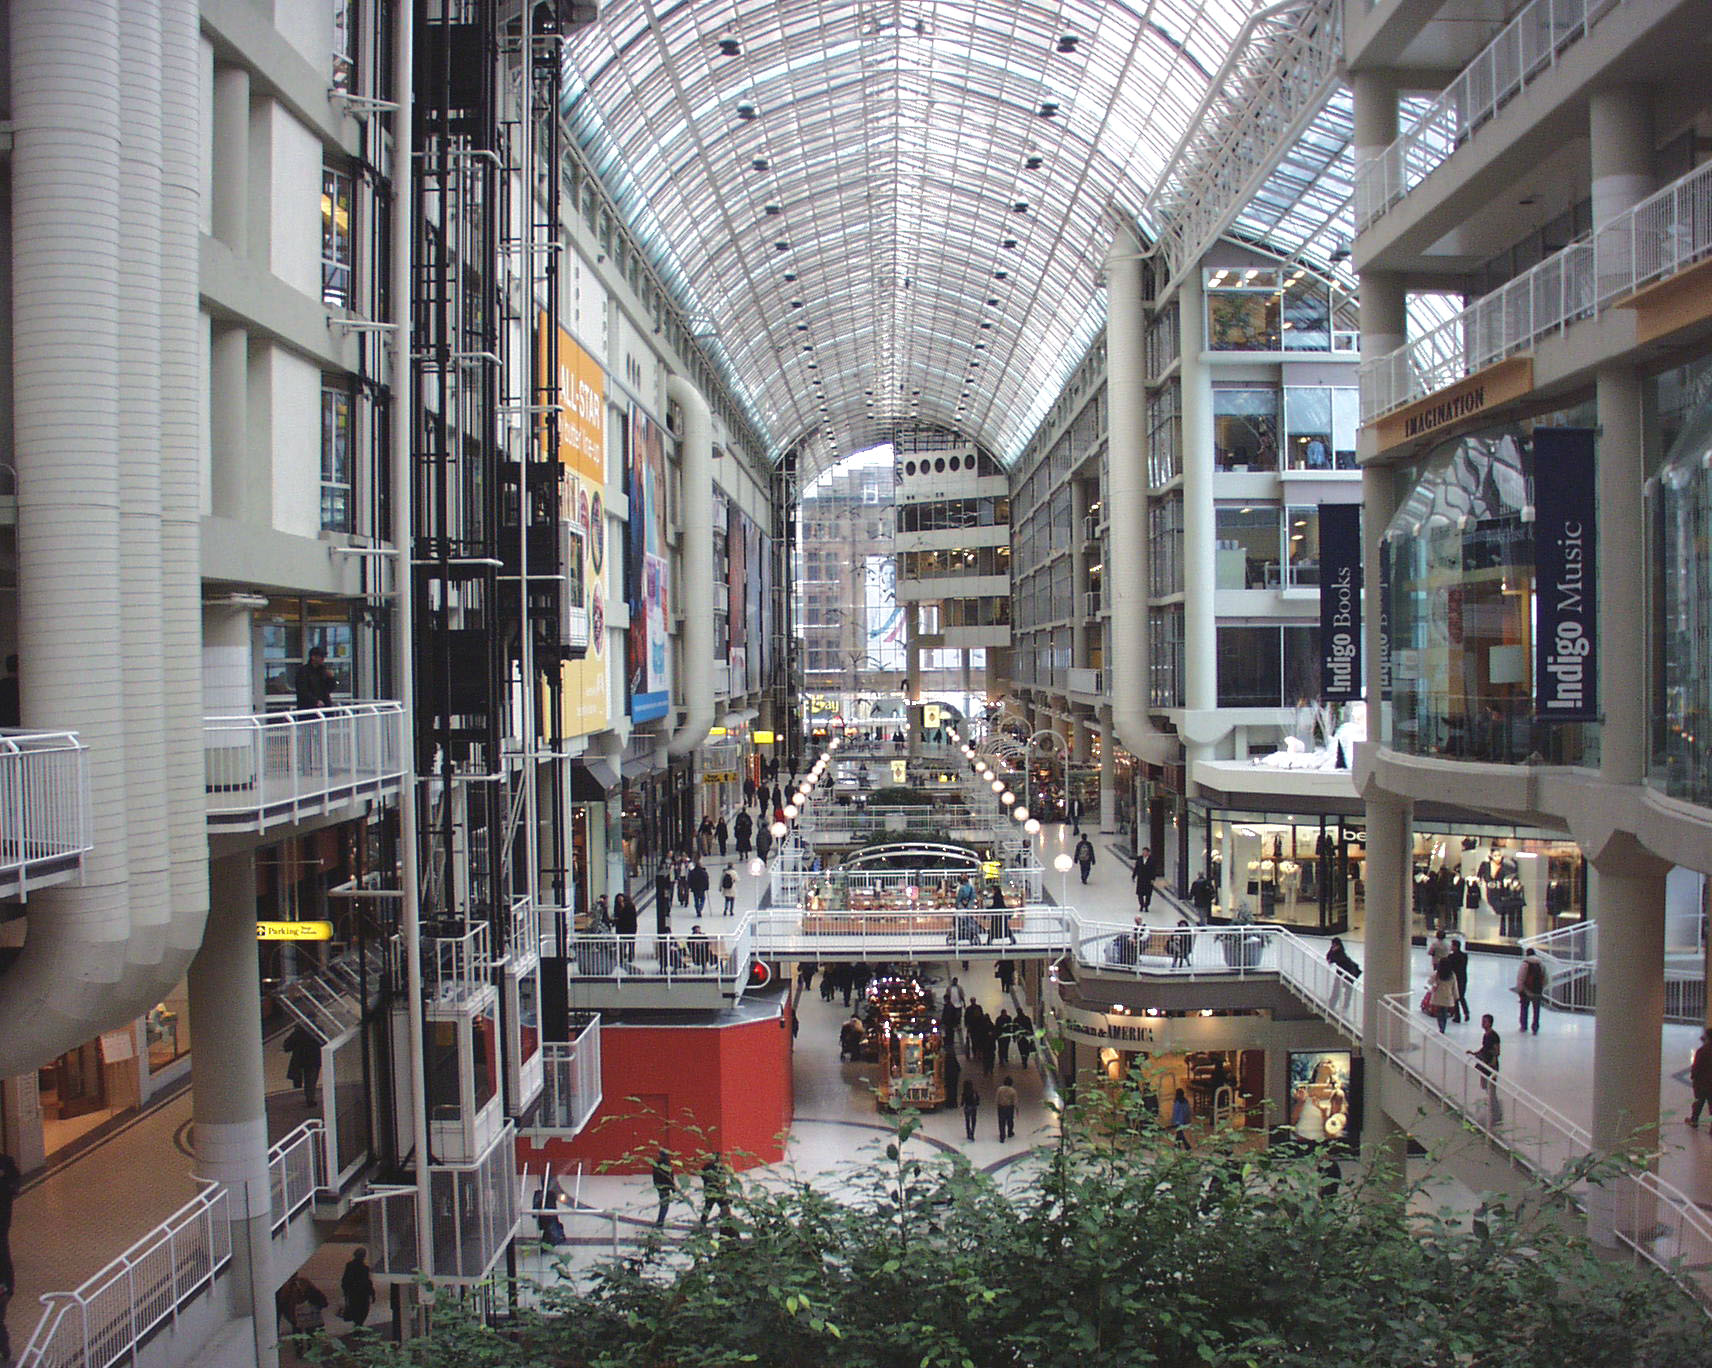 Best Toronto Shopping: See reviews and photos of shops, malls & outlets in Toronto, Canada on TripAdvisor.